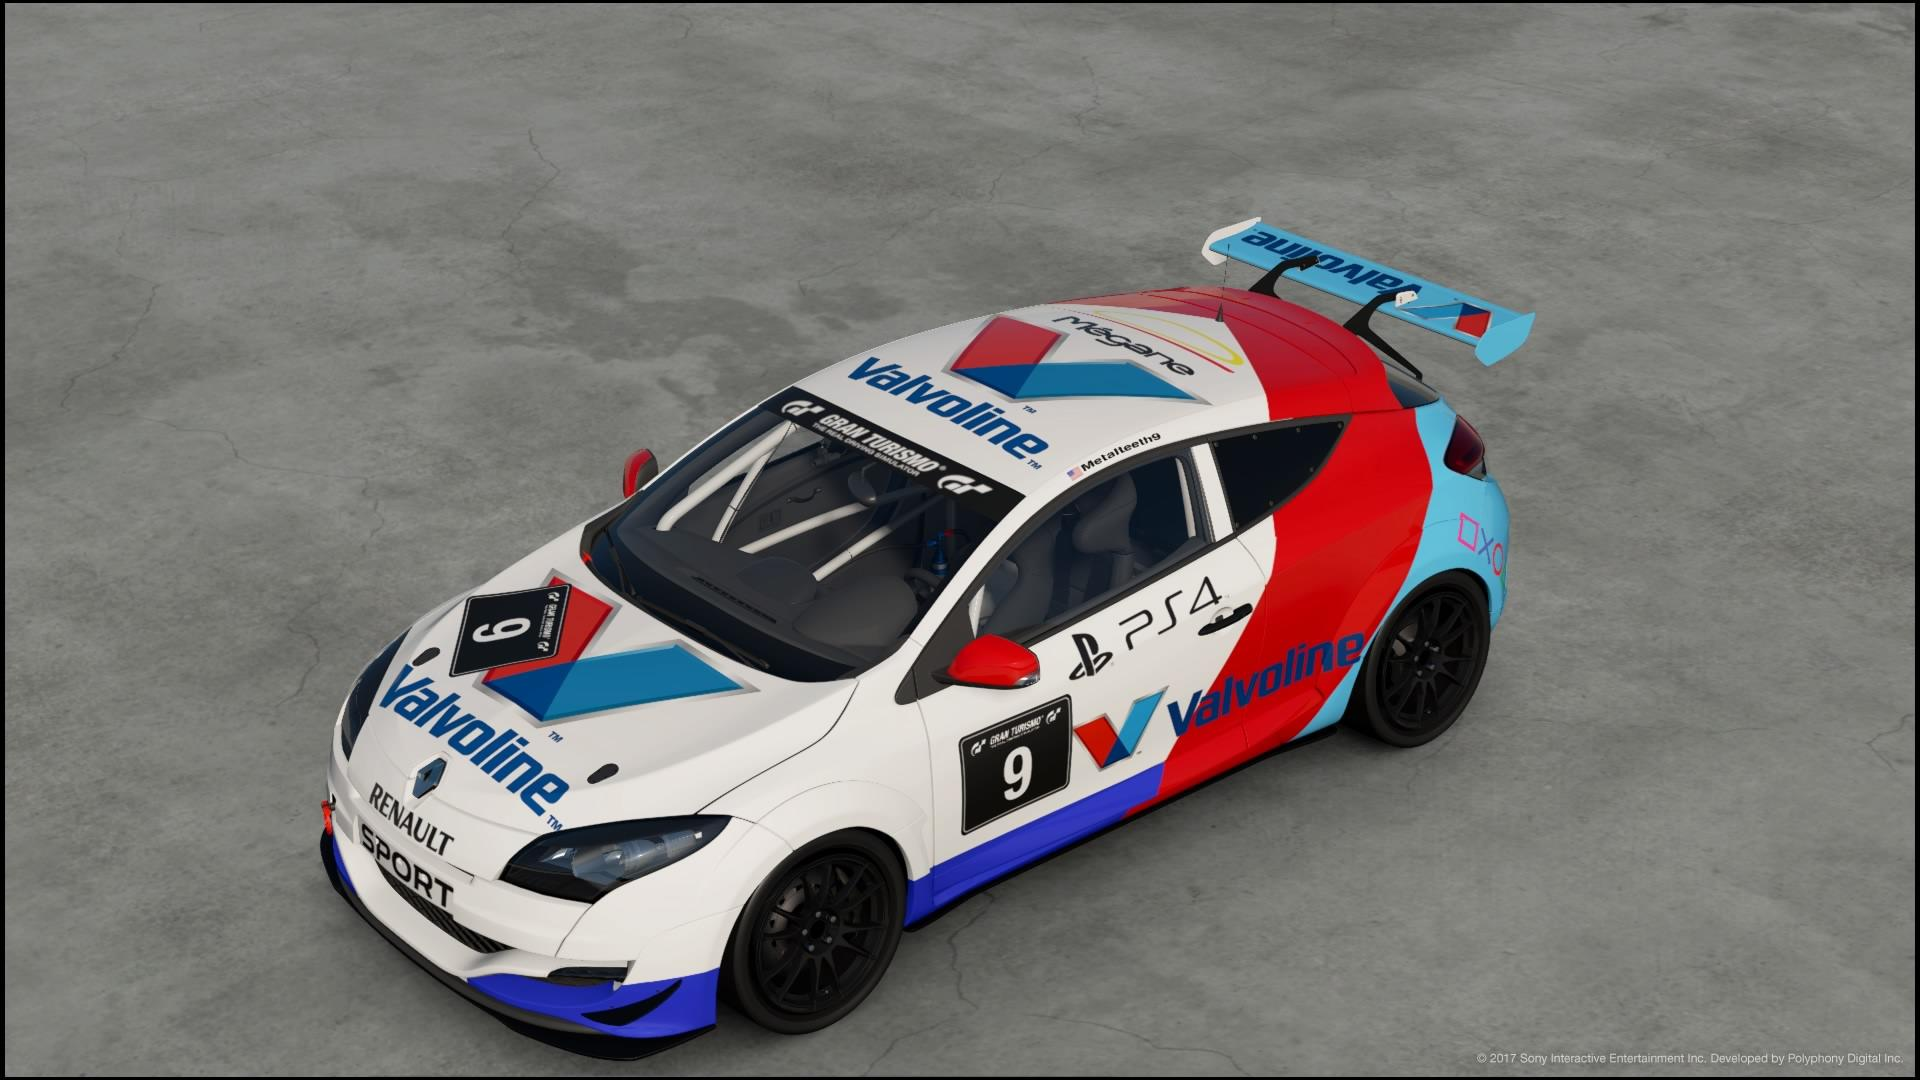 My first livery   a Valvoline Renault Megane with a Cool Twist 1920x1080